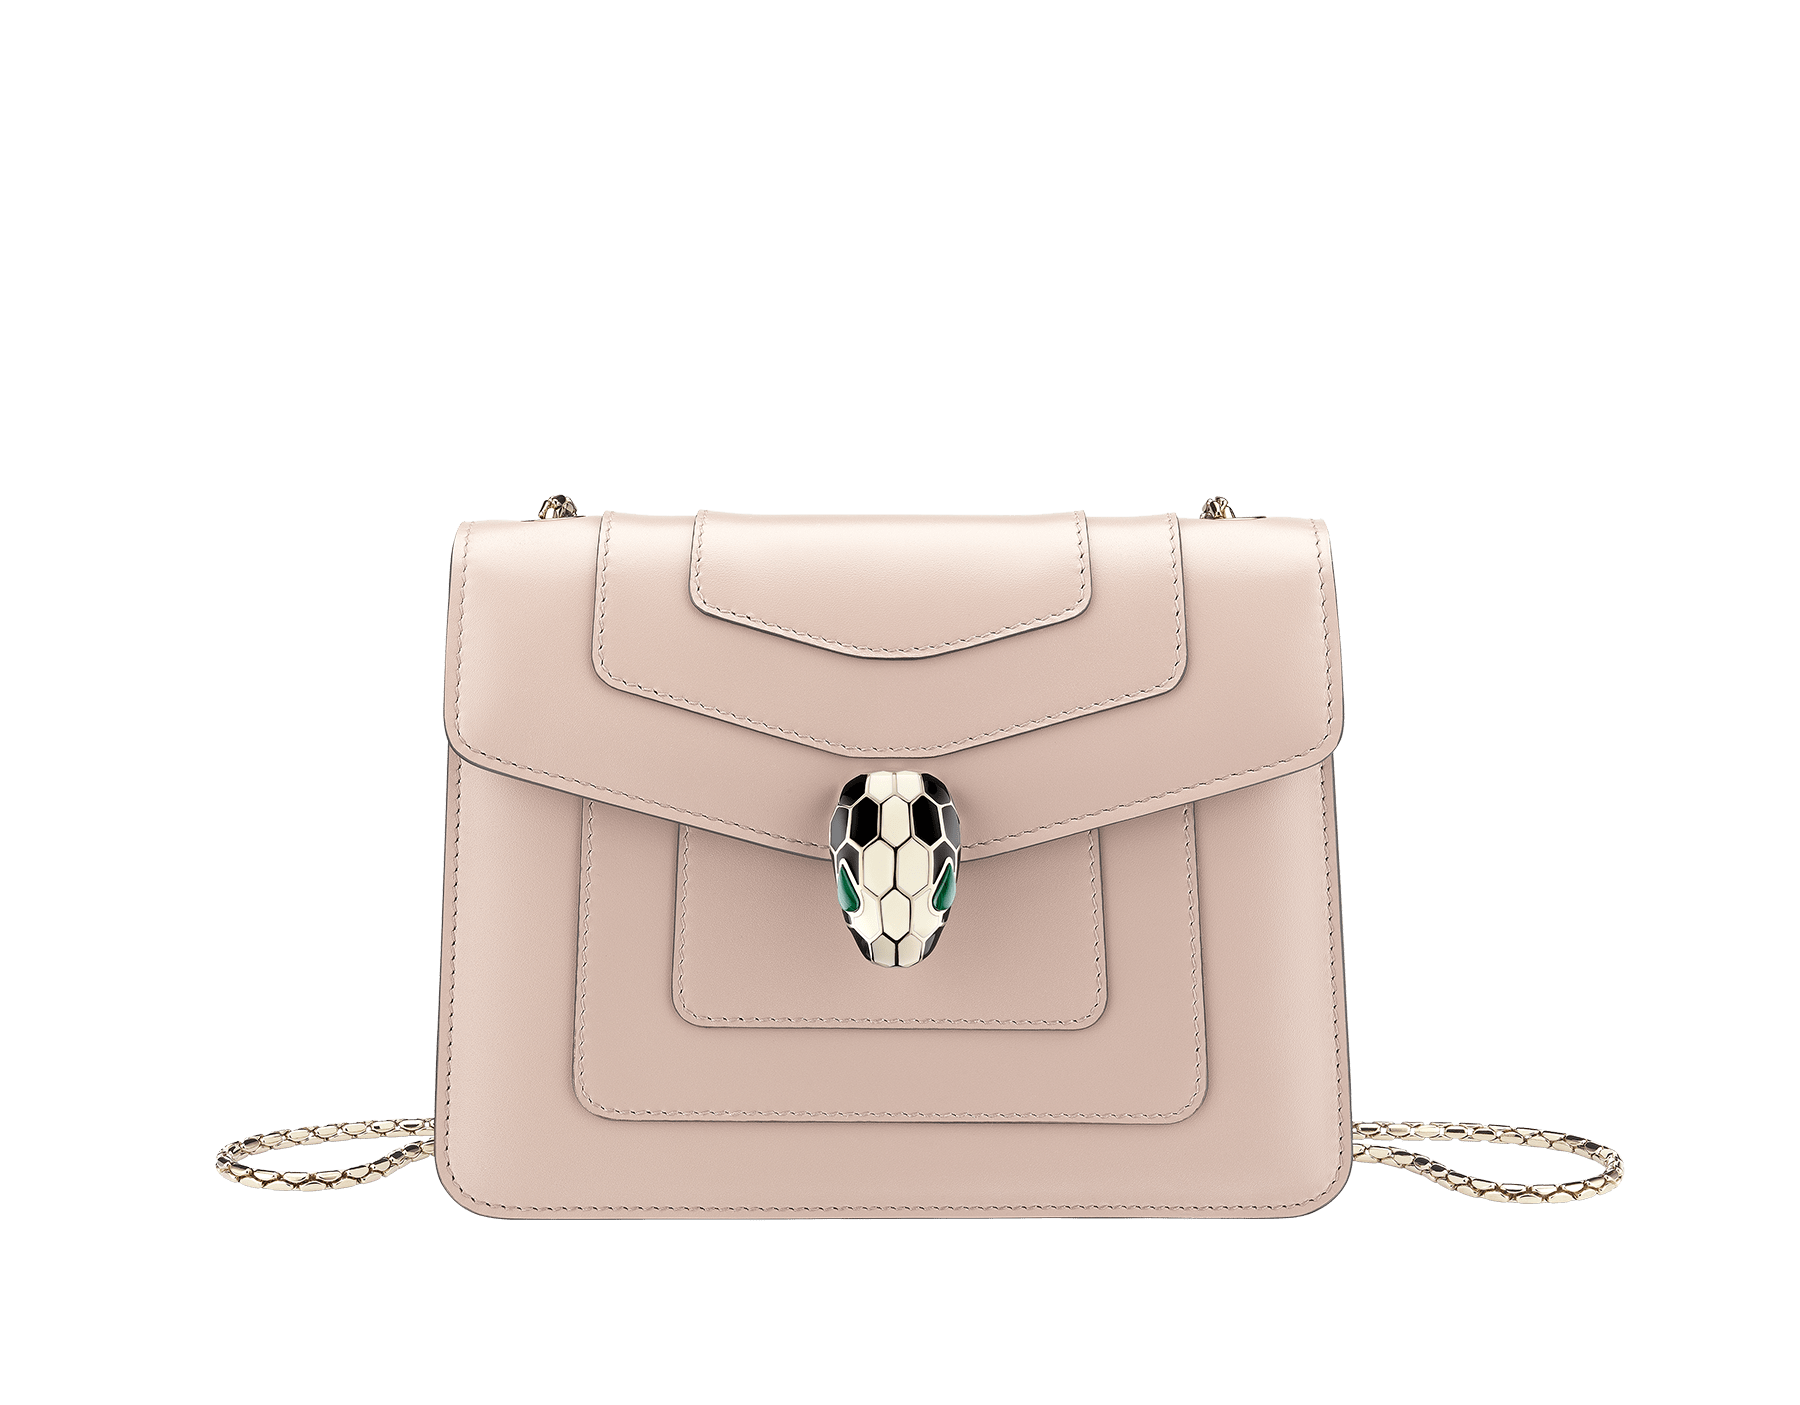 """Serpenti Forever"" crossbody bag in crystal rose calf leather. Iconic snakehead closure in light gold plated brass enriched with black and white enamel and green malachite eyes 287017 image 1"